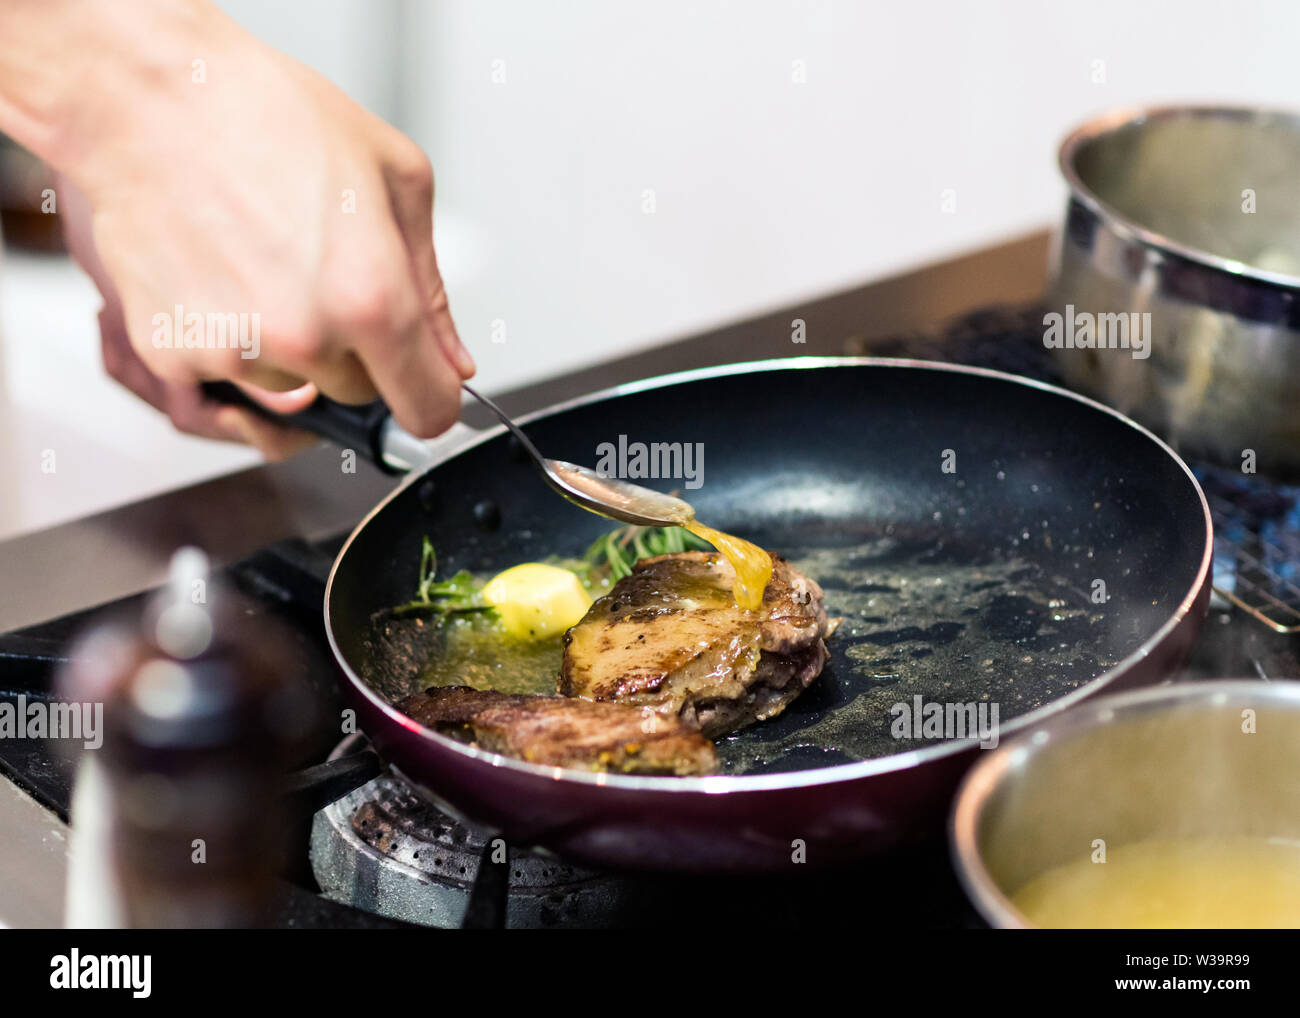 Chef cooking food in the kitchen, Chef preparing food - Stock Image